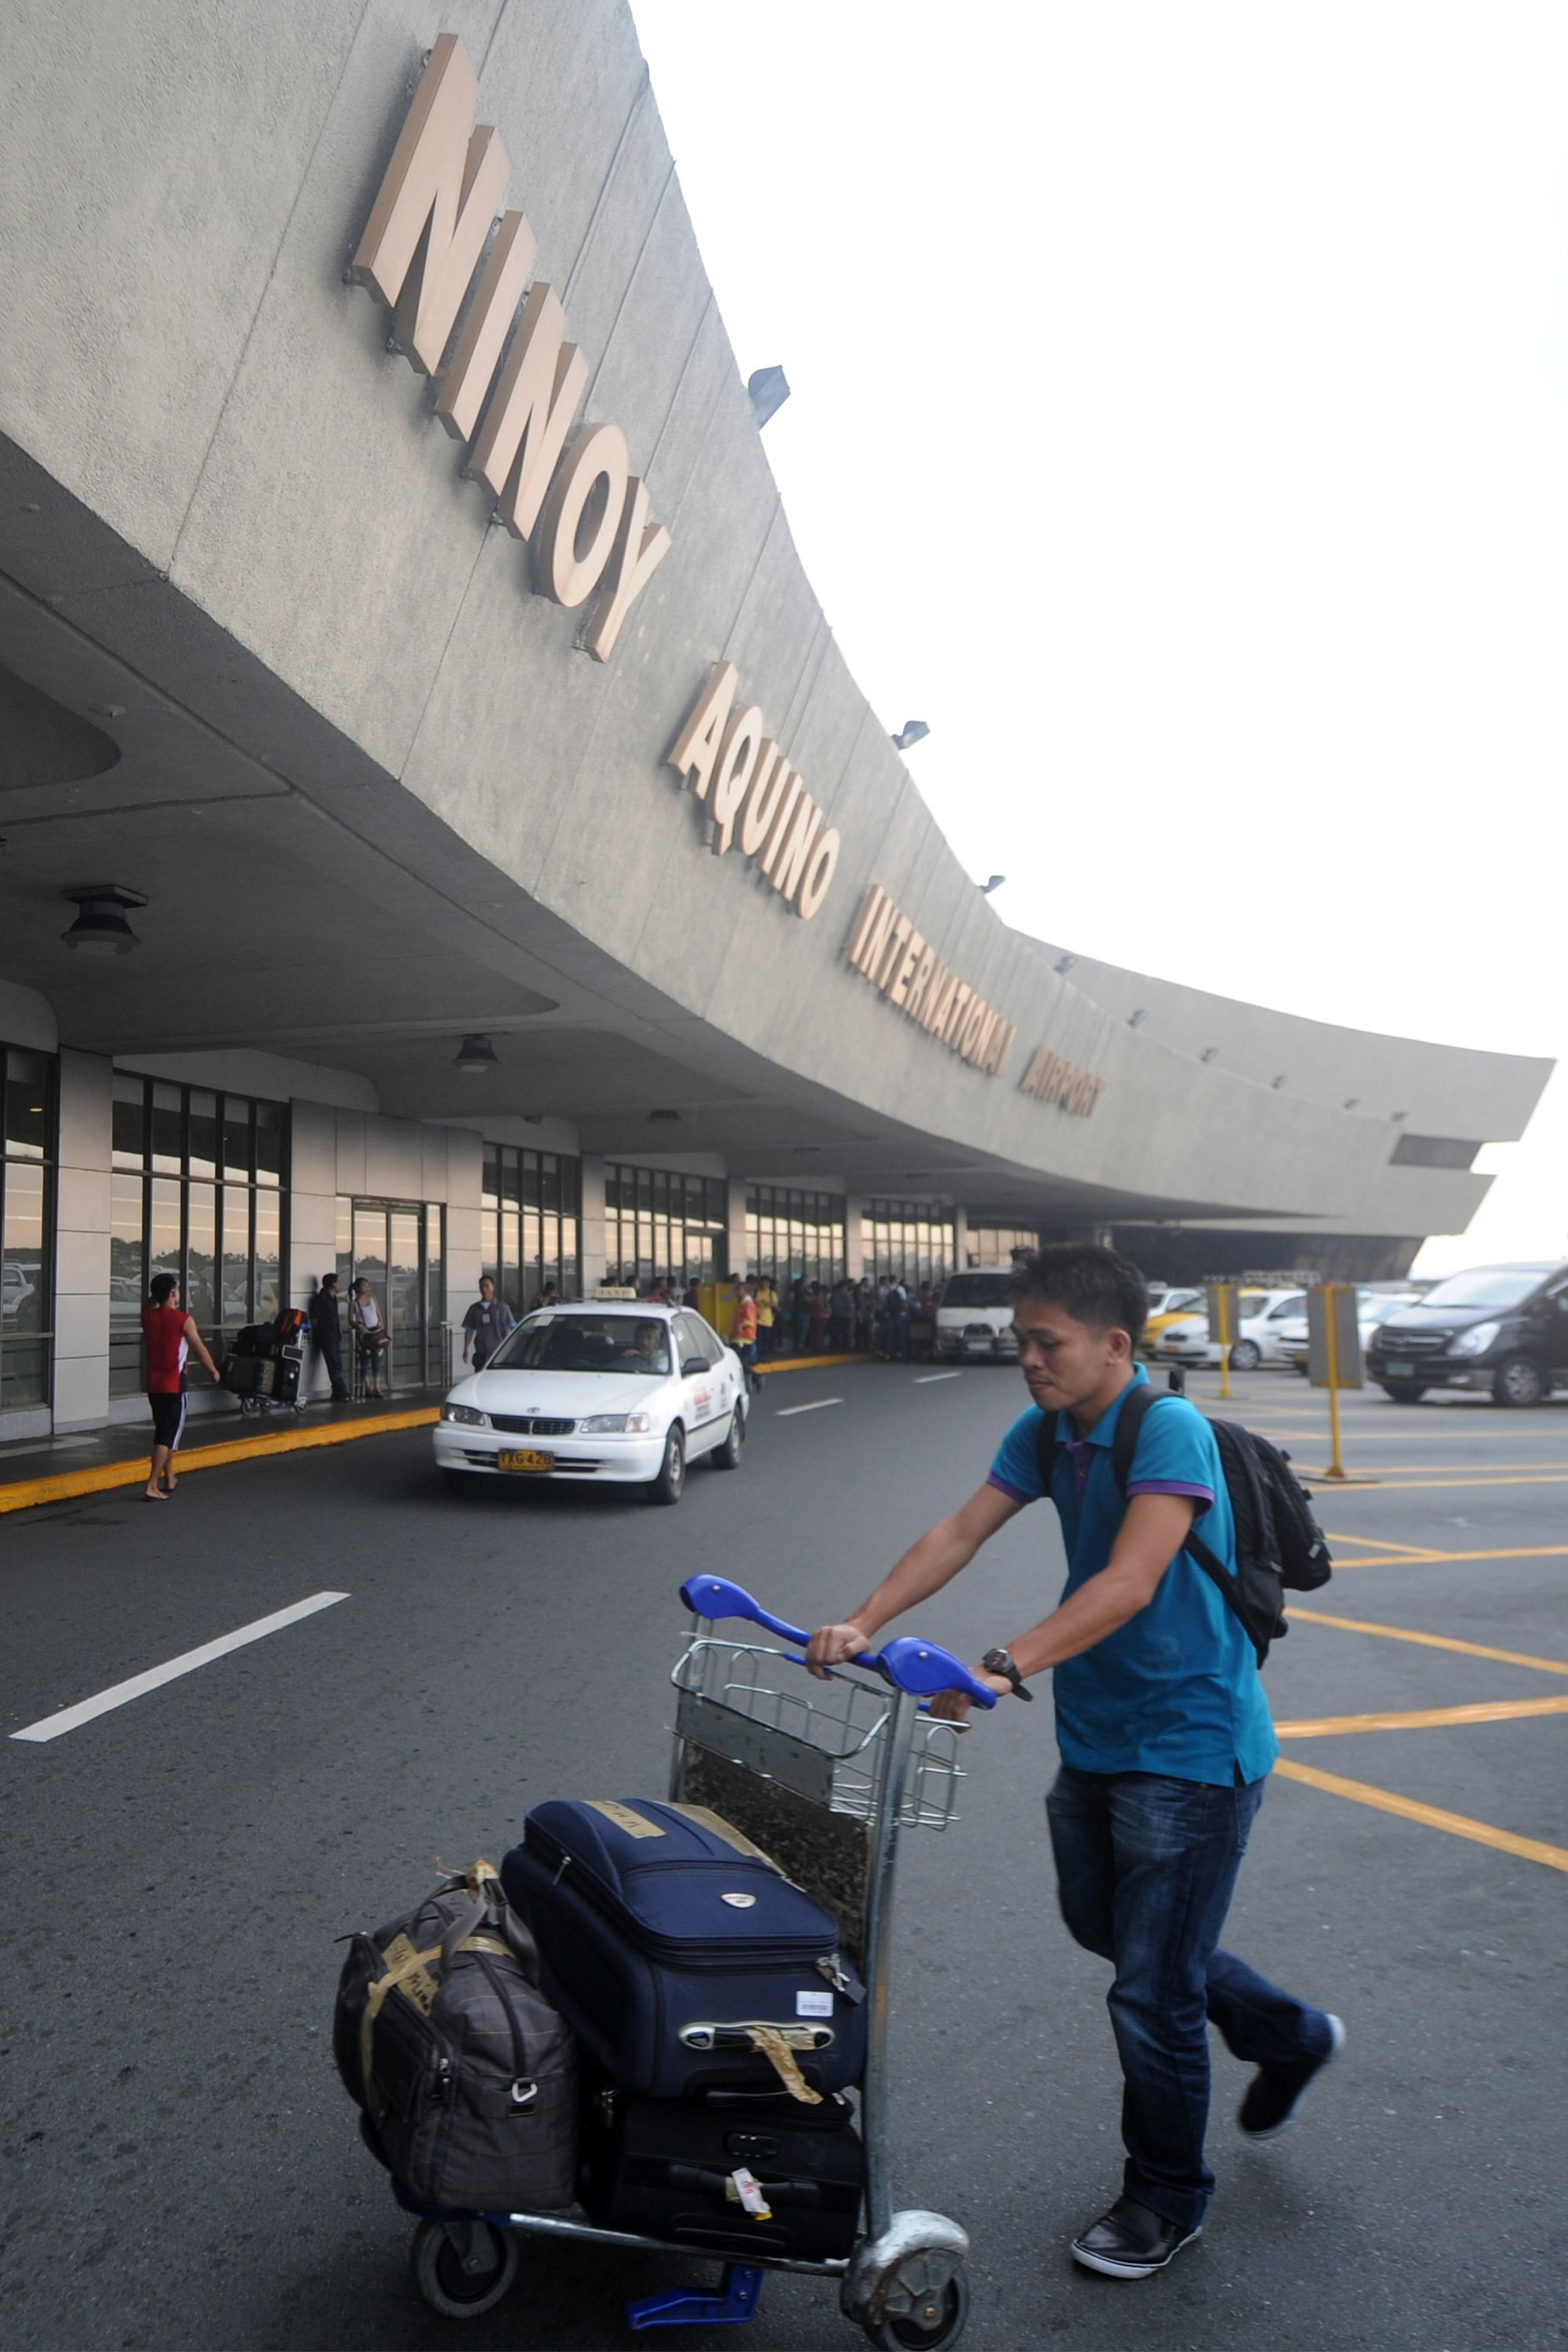 US issues security warning over Manila airport, SE Asia News